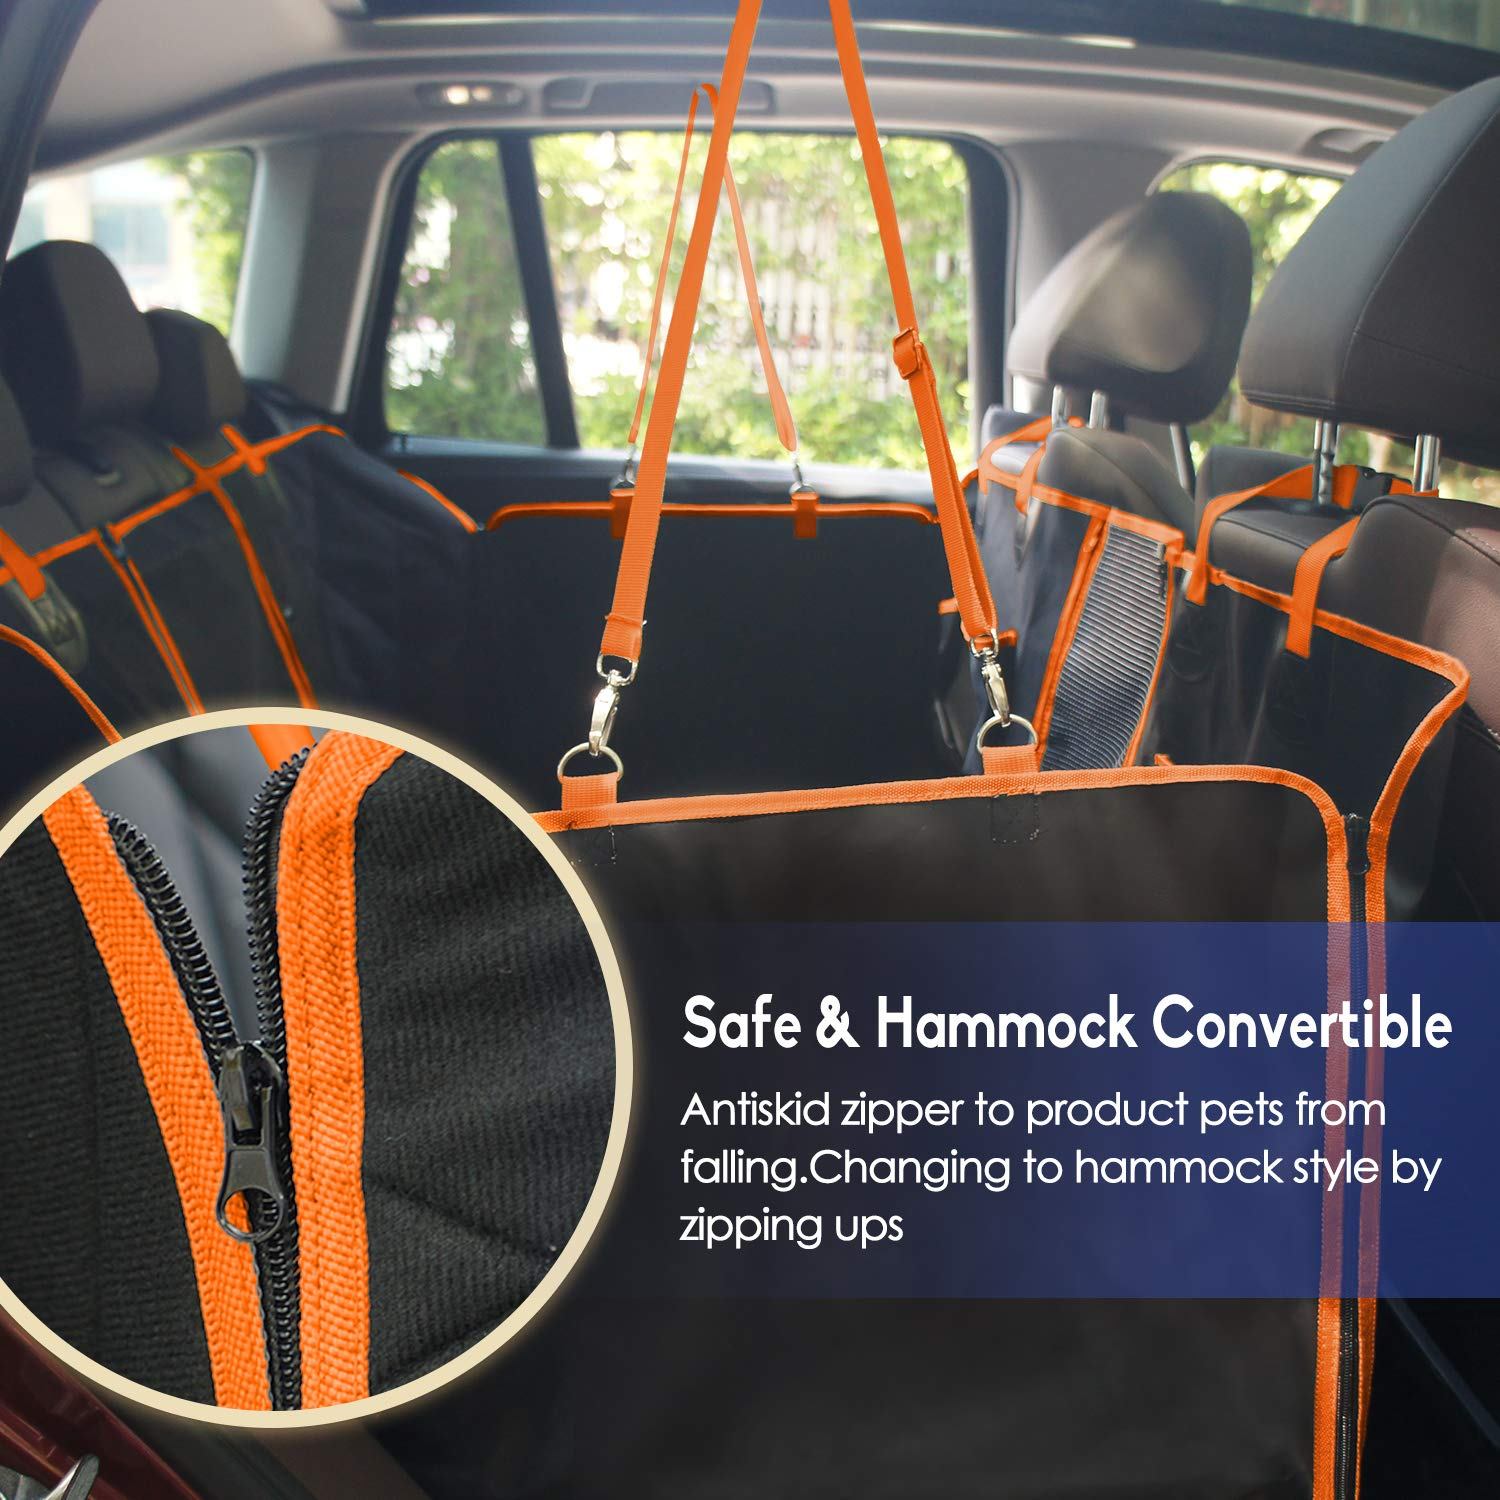 Dog Hammock Dog Car Back Seat Cover with Mesh Viewing Window /& Storage Pocket /& Side Flaps Waterproof Non-Scratch Nonslip Durable Dog Seat Cover for Cars//Trucks//SUV Orange ROTANET Dog Seat Cover